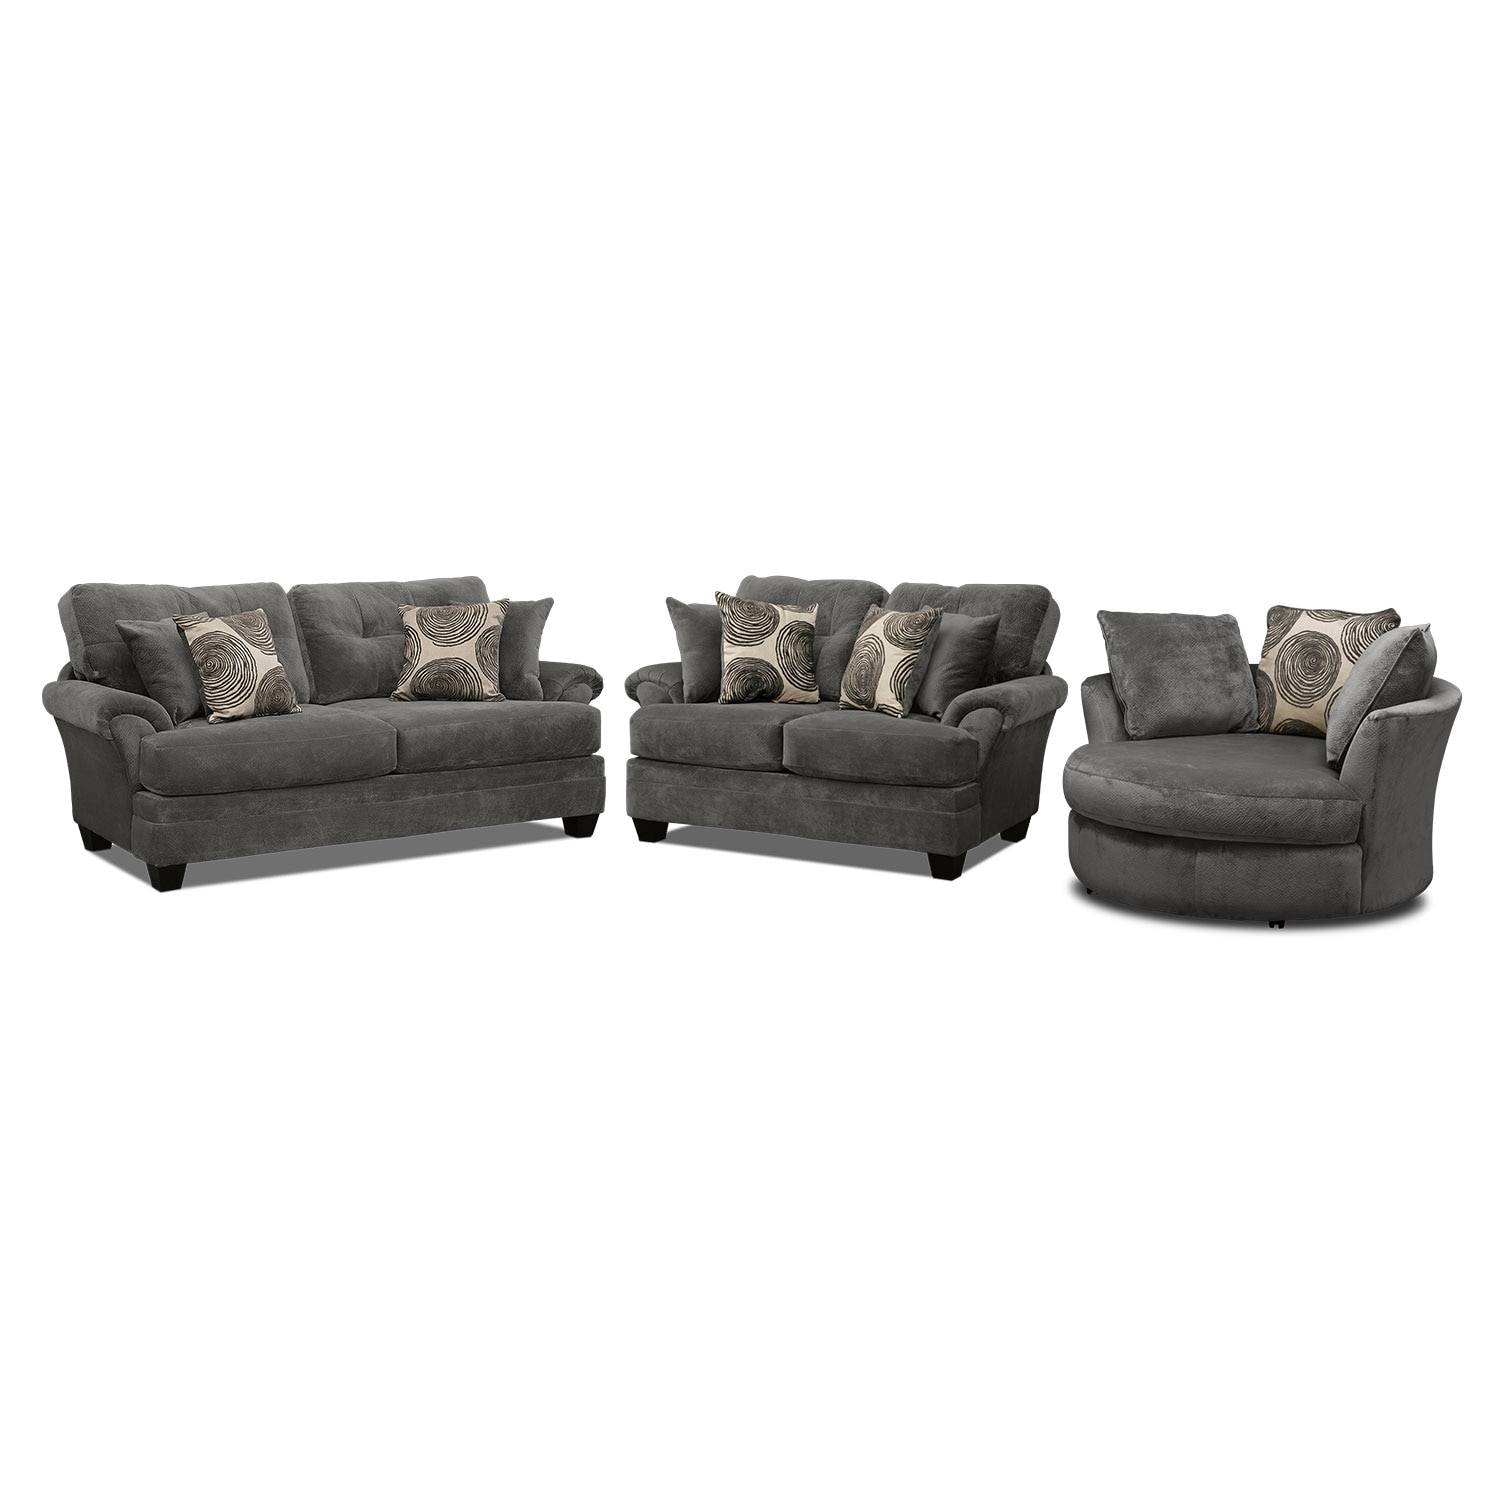 Cordelle Sofa, Loveseat And Swivel Chair Set - Gray | Value City for Swivel Sofa Chairs (Image 4 of 30)